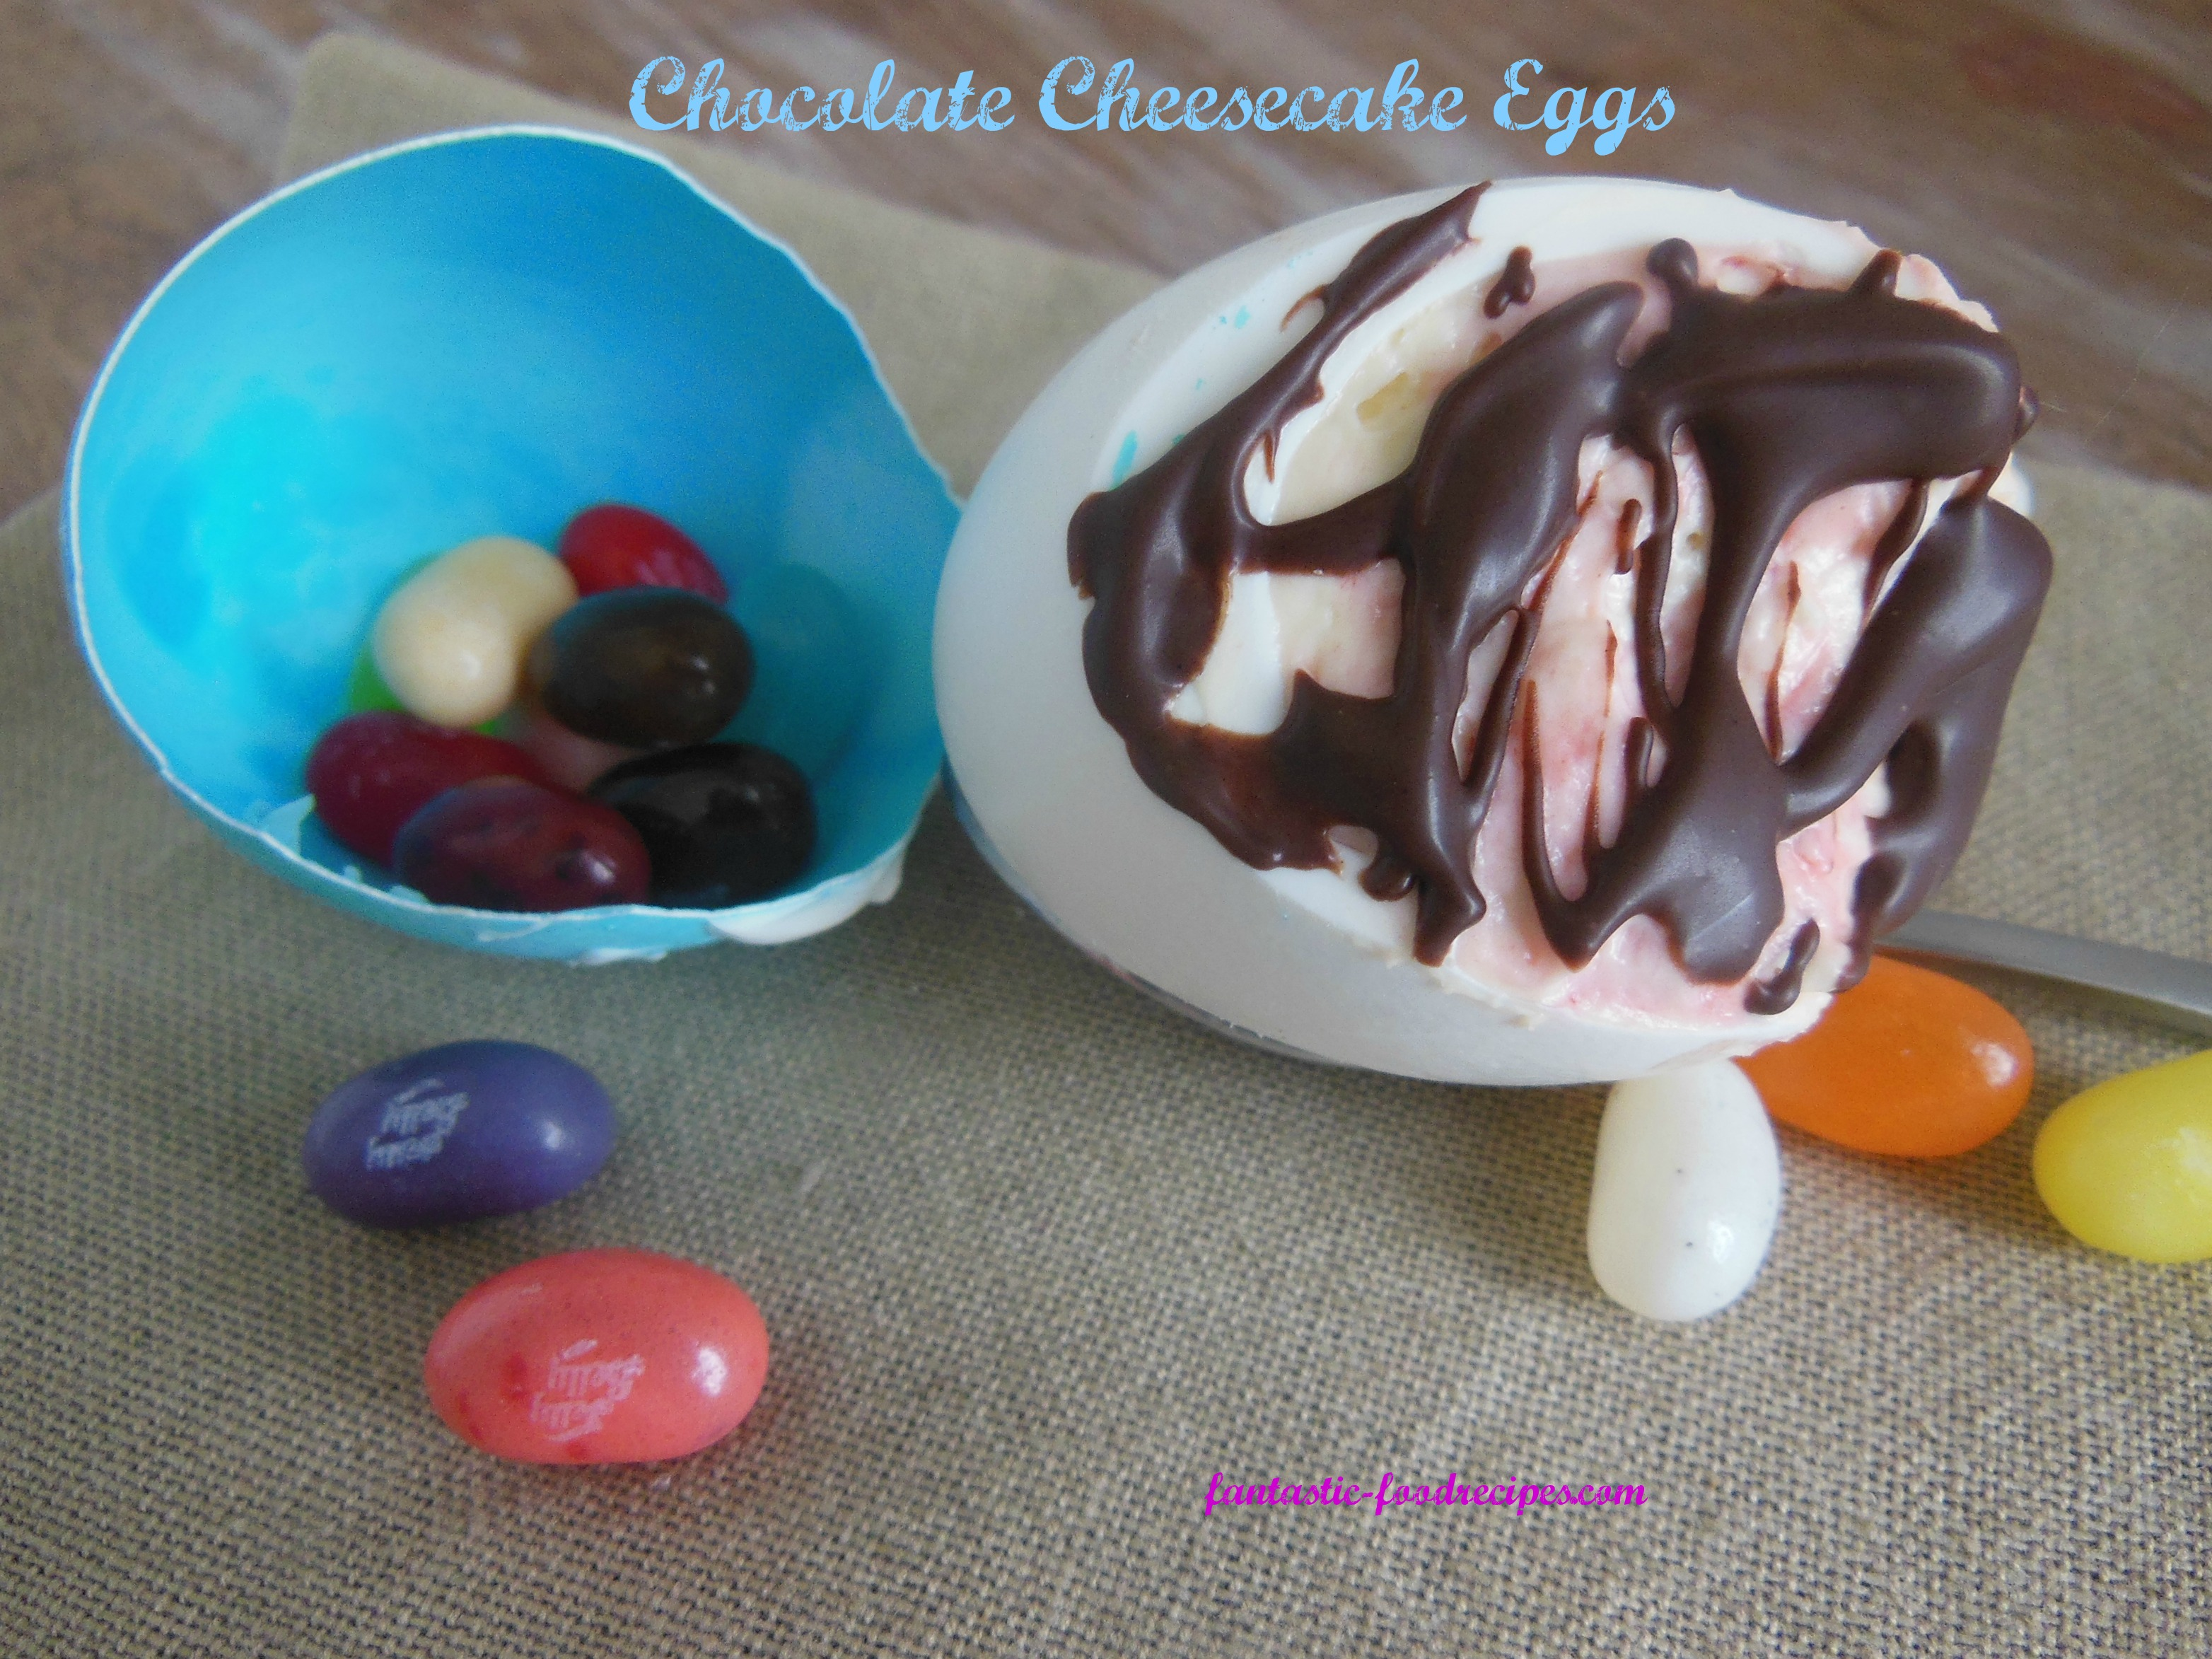 Chocolate Cheesecake Eggs- FFR